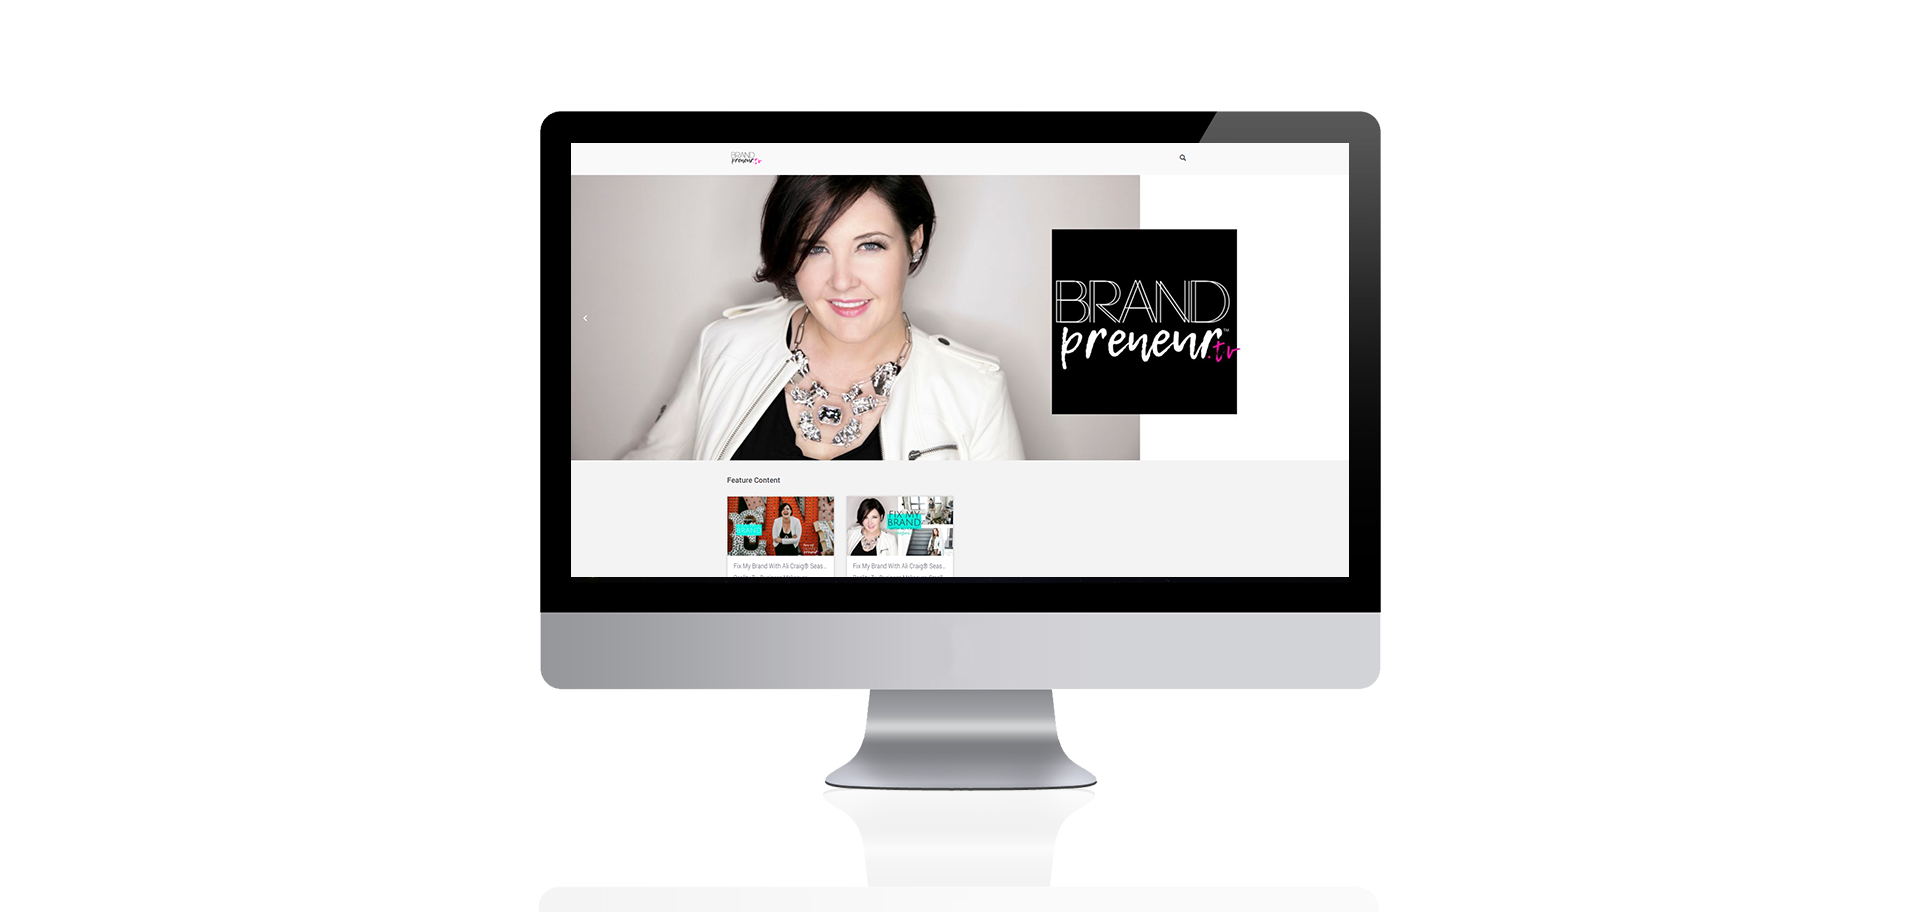 Brandpreneurtv  Website